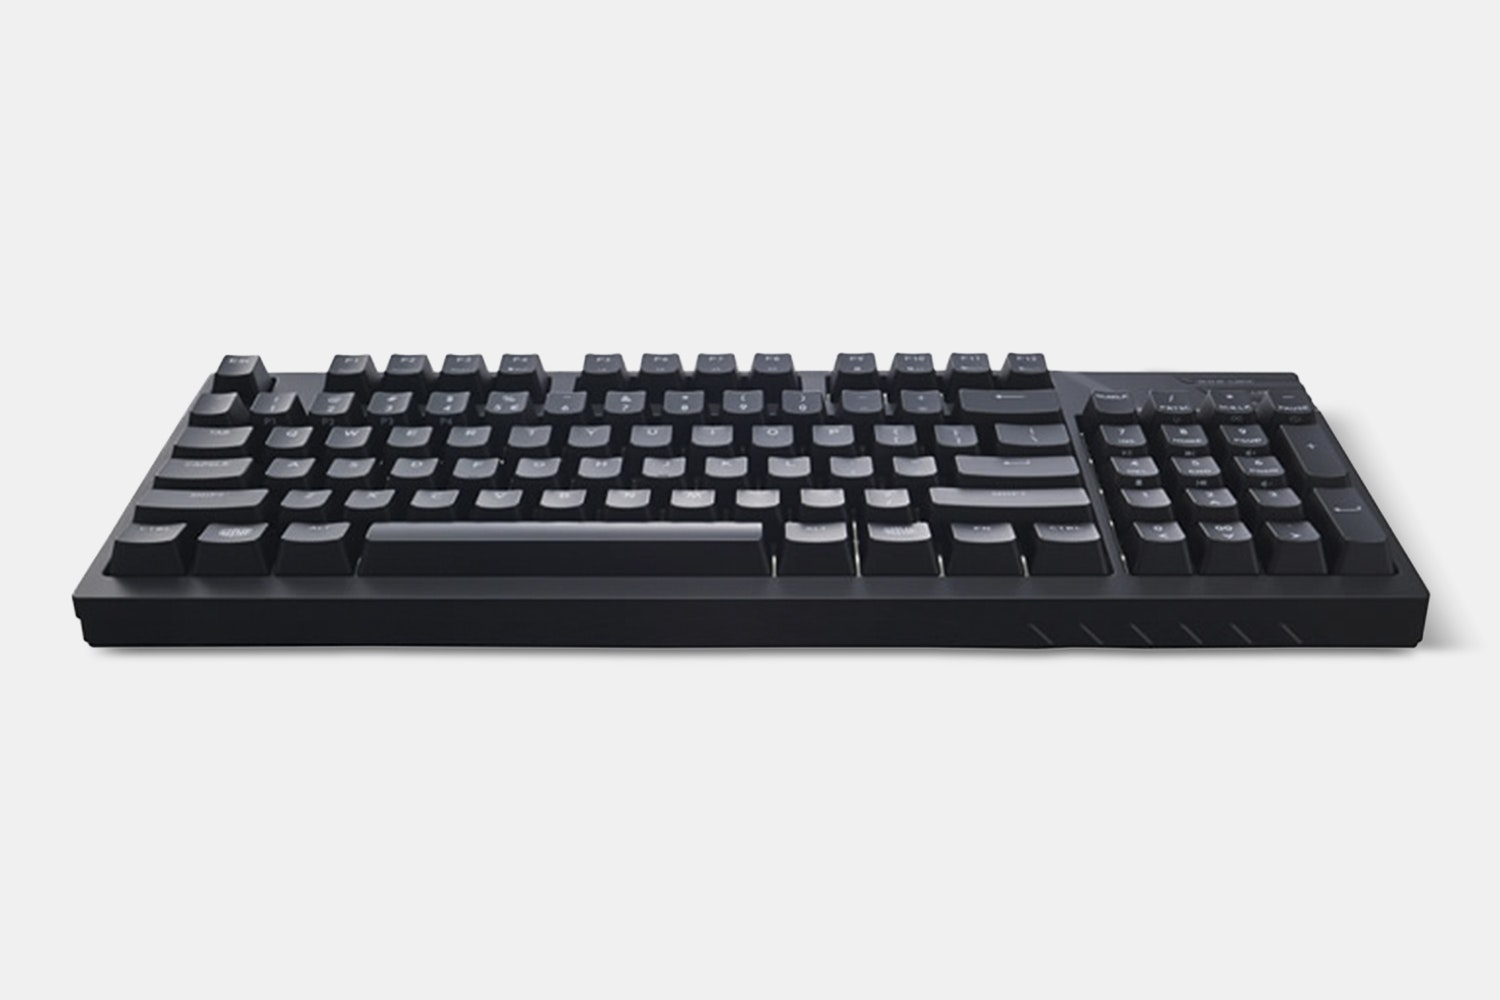 Cooler Master Masterkeys Pro M RGB Gaming Keyboard